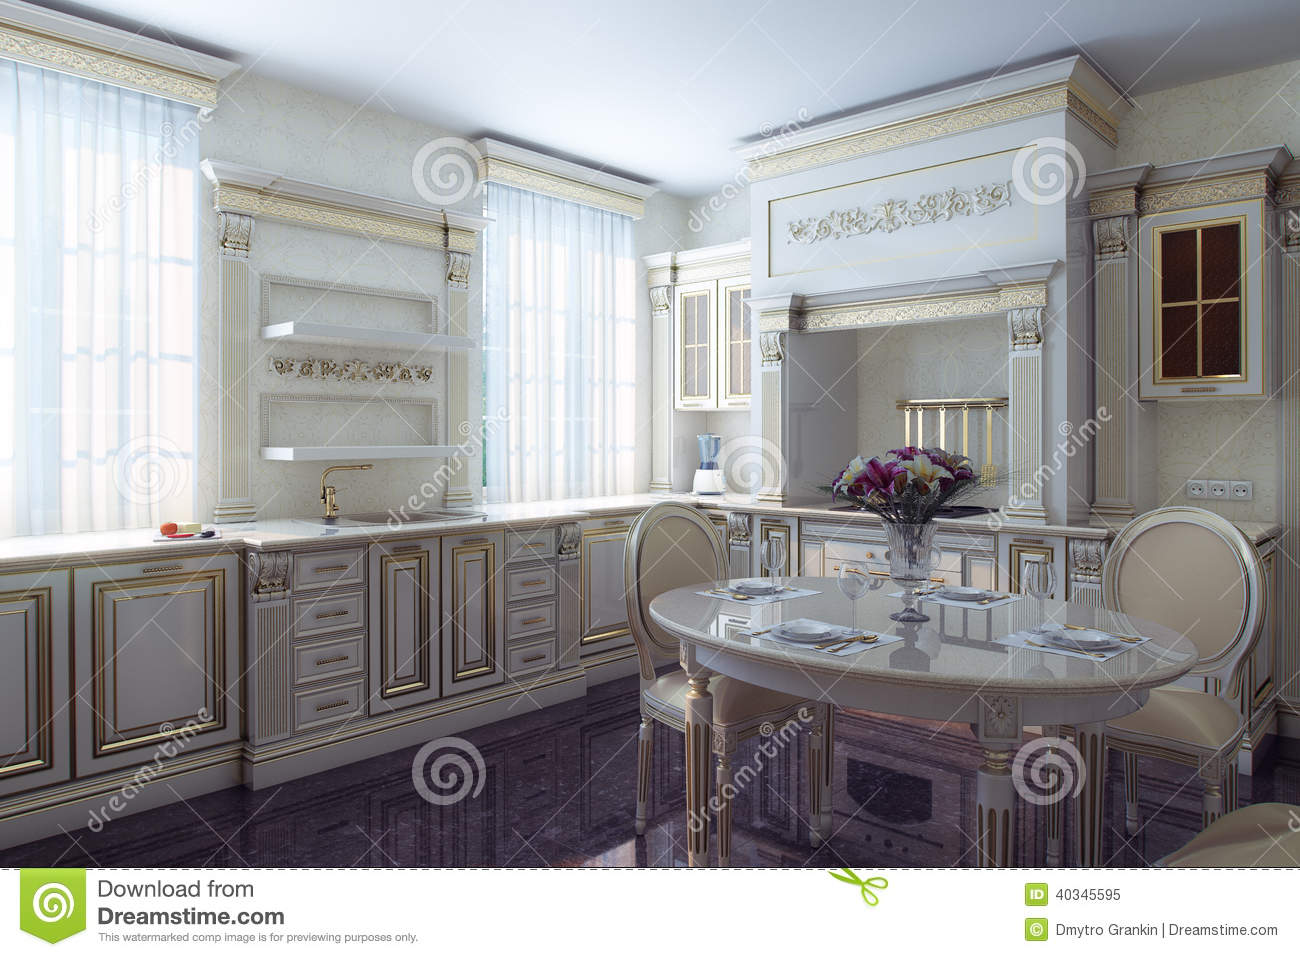 Antique Looking Kitchen Cabinets Classic Kitchen Cabinet In Provence Vintage Style Stock